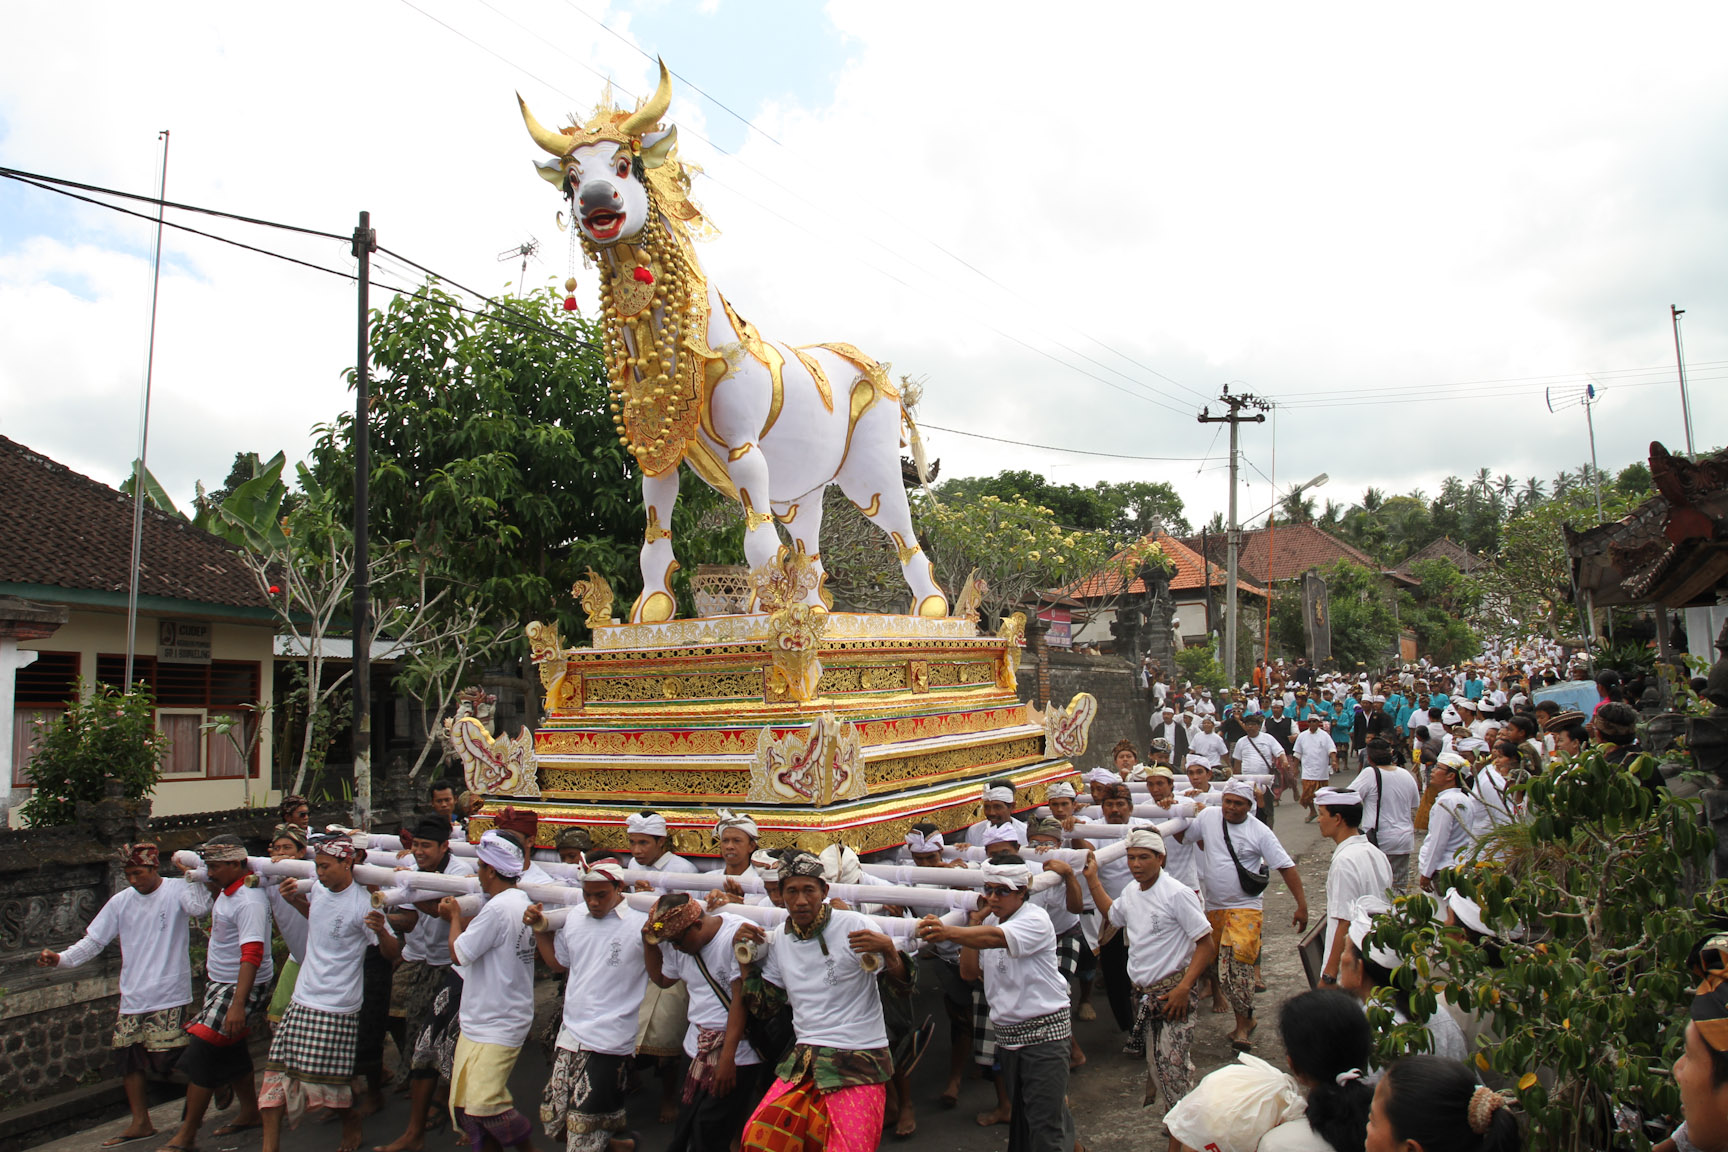 The cow that will hold the body during cremation